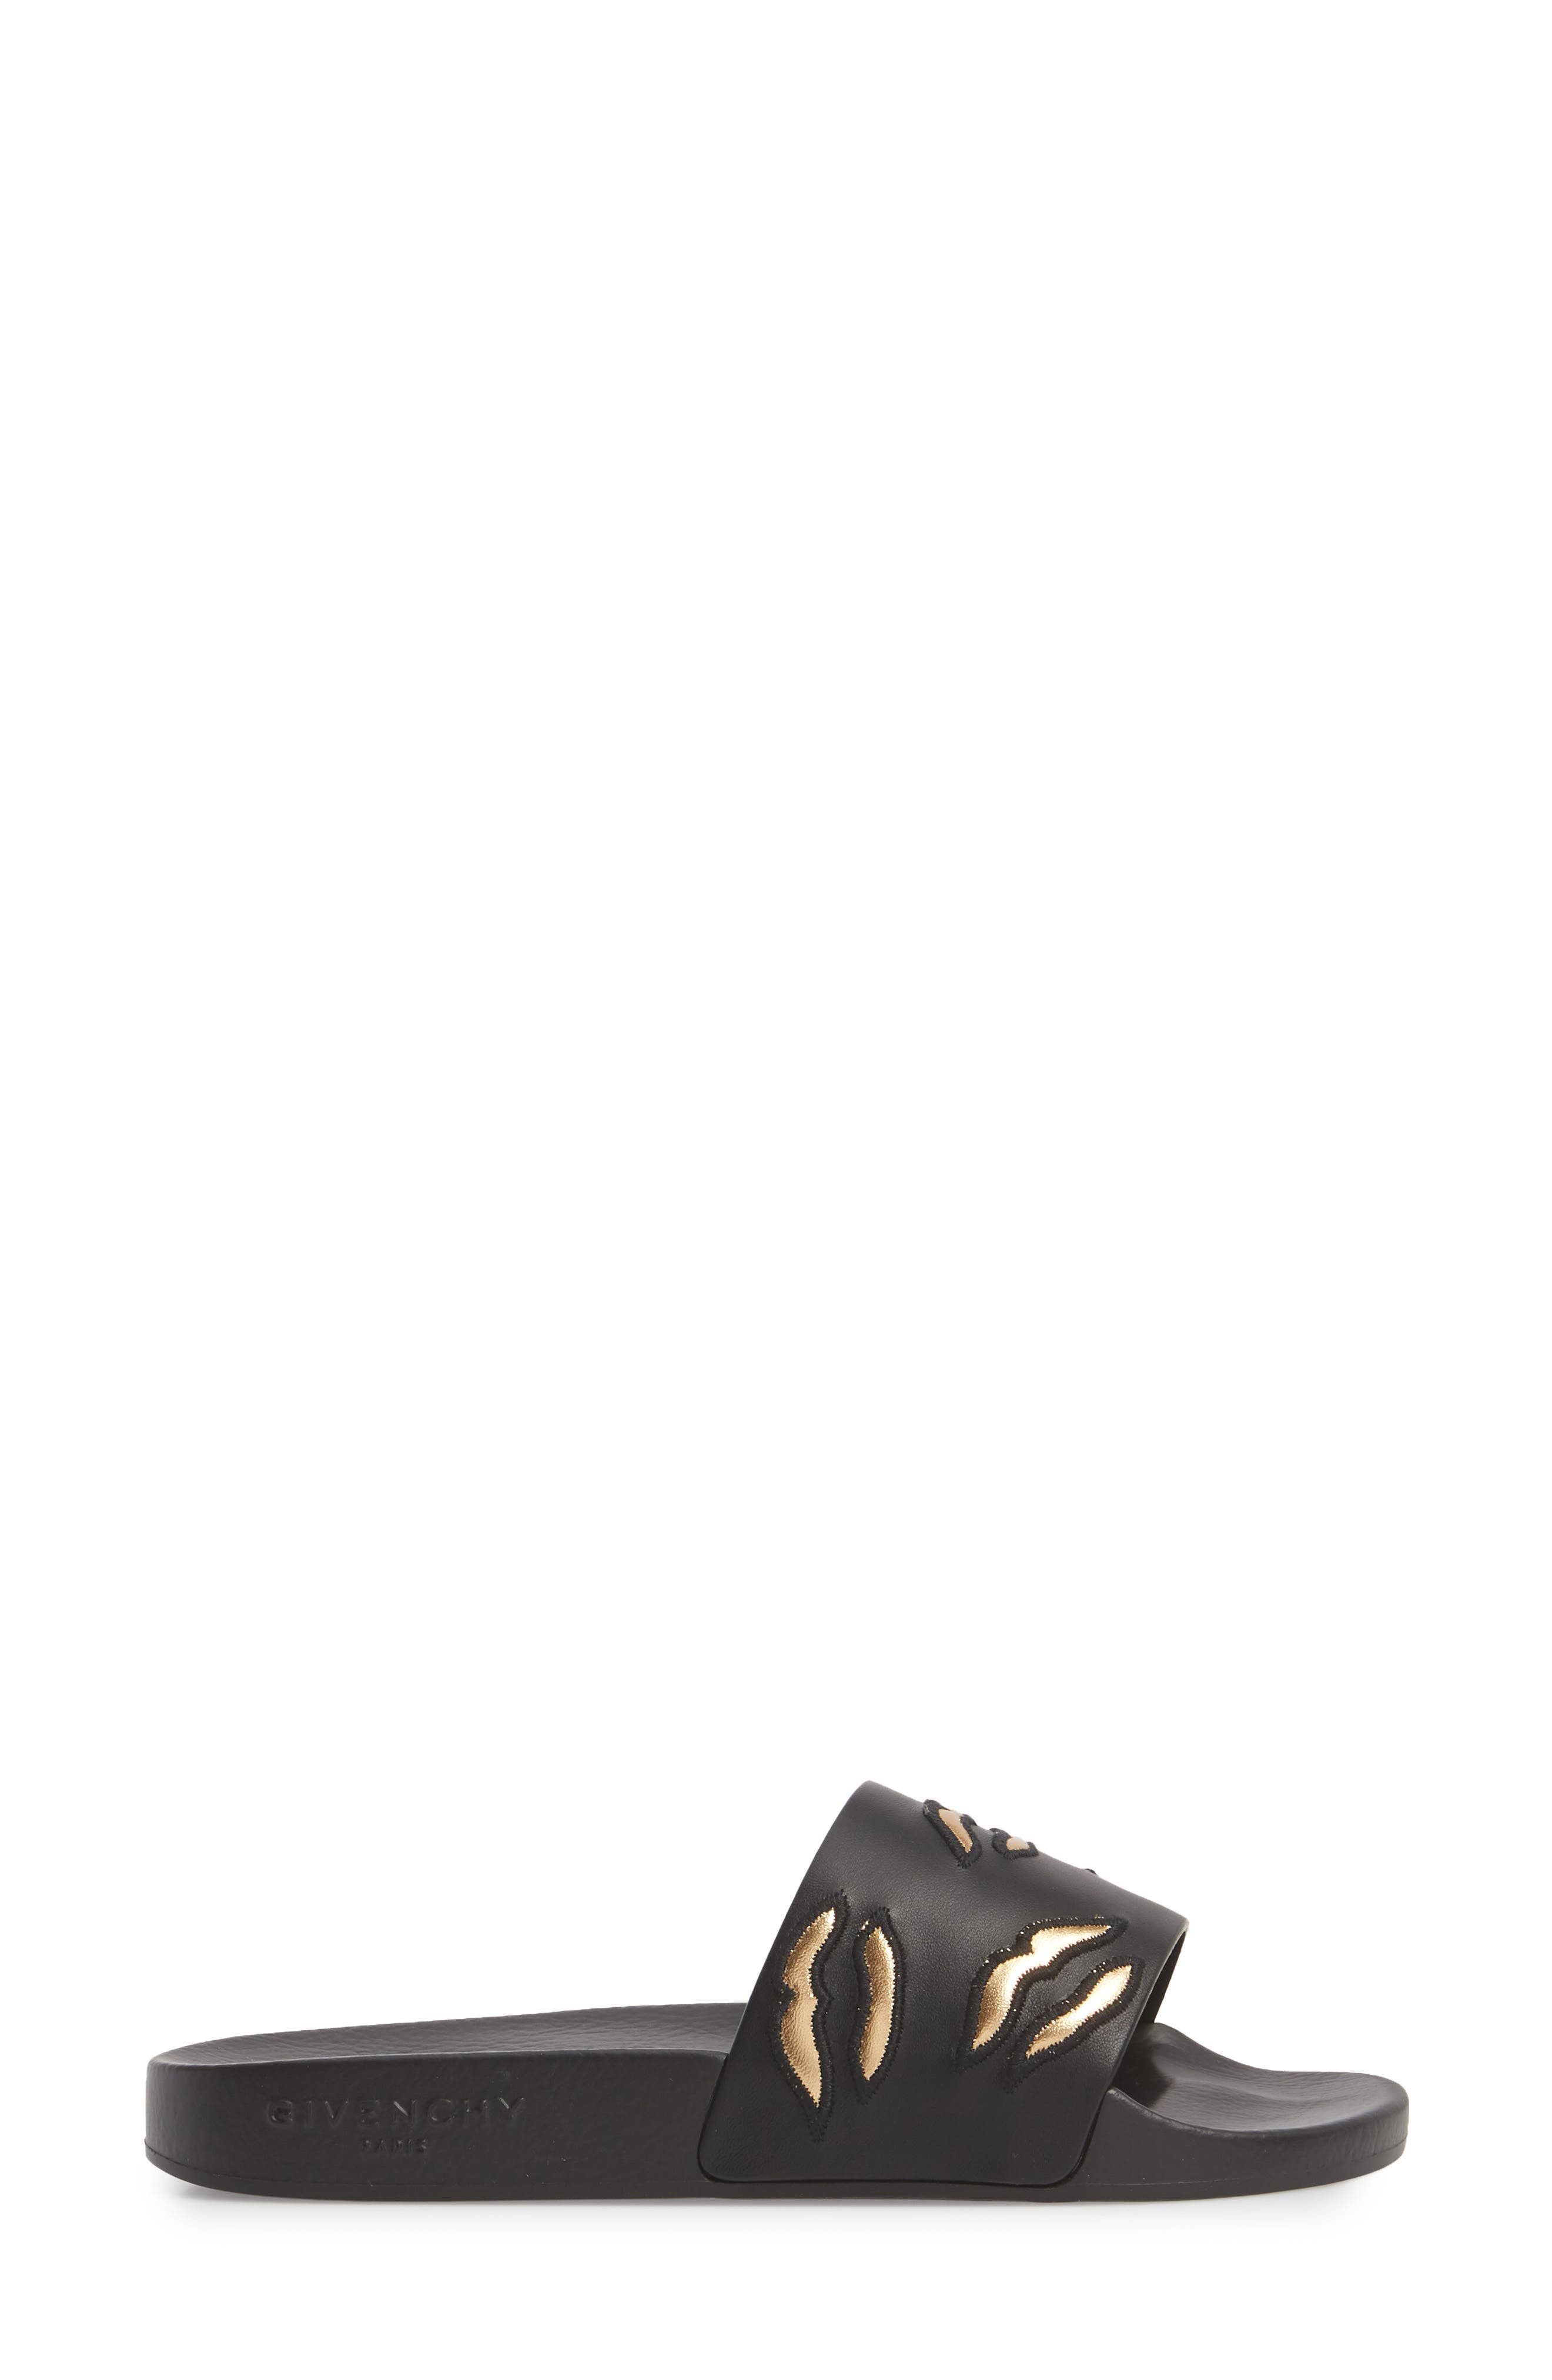 Kiss Slide Sandal,                             Alternate thumbnail 3, color,                             BLACK/ GOLD